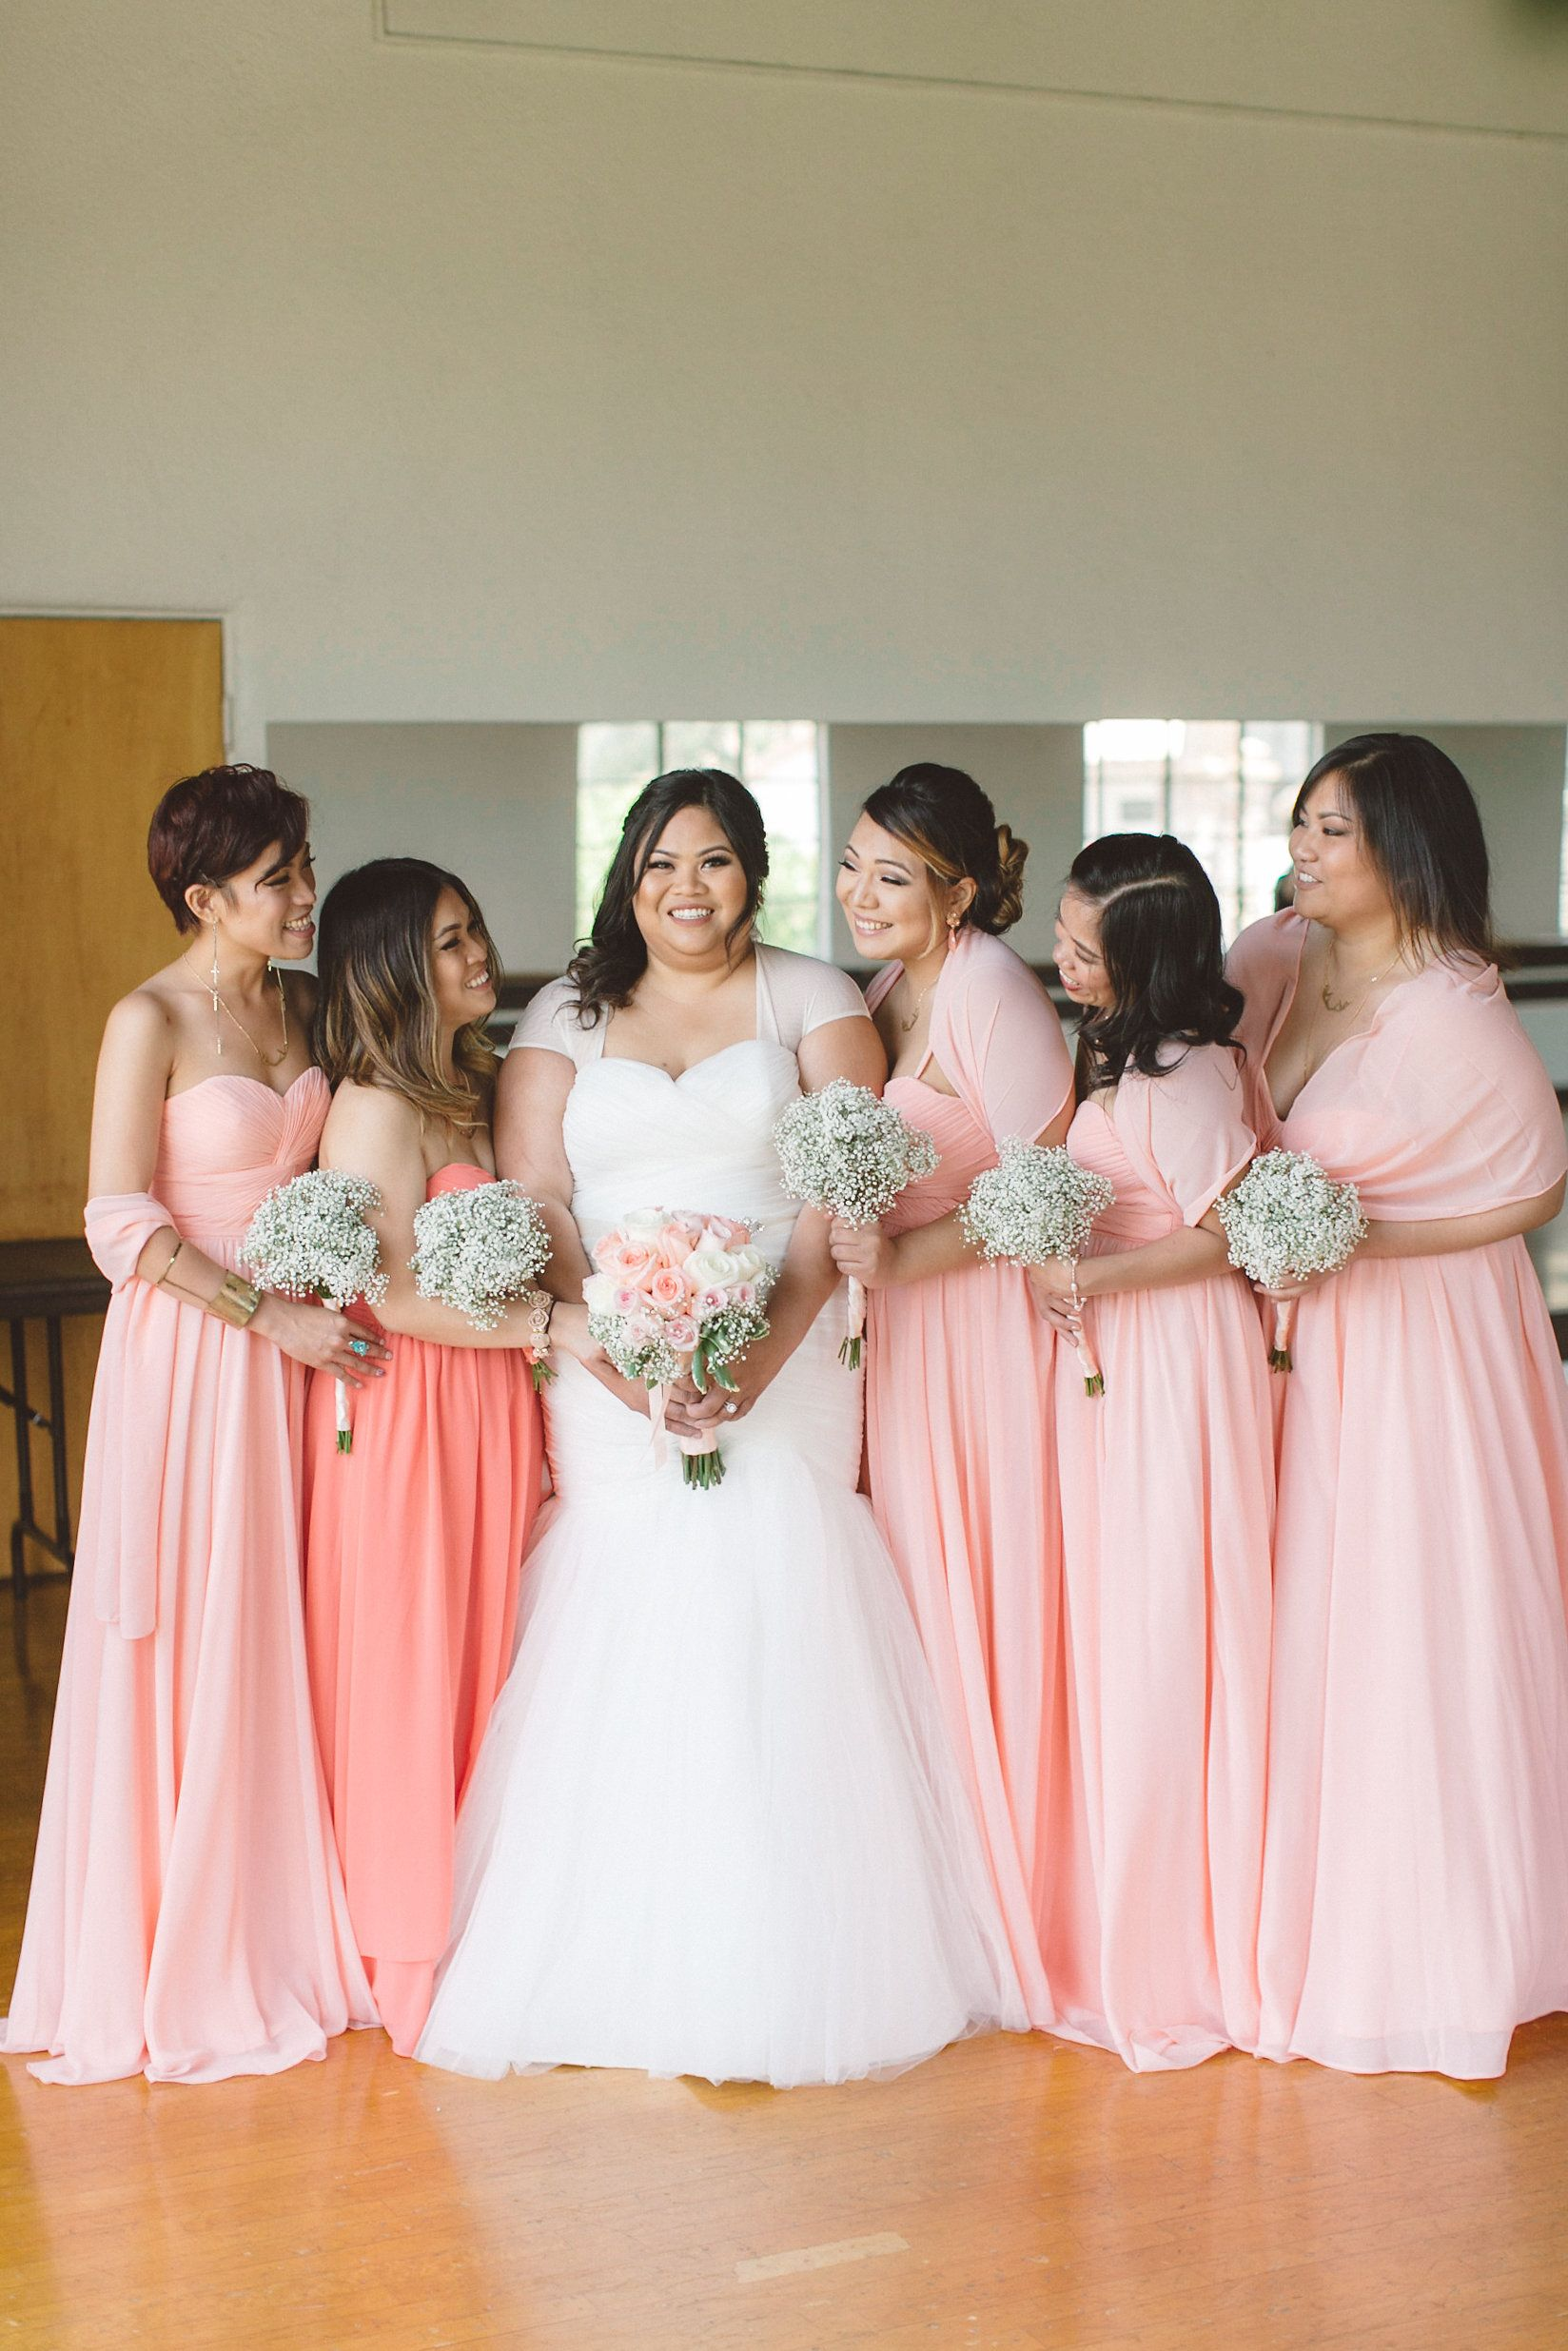 Peach and pink wedding wedding bridal poses and wedding pink and coral bridesmaids weddingchicks ombrellifo Gallery